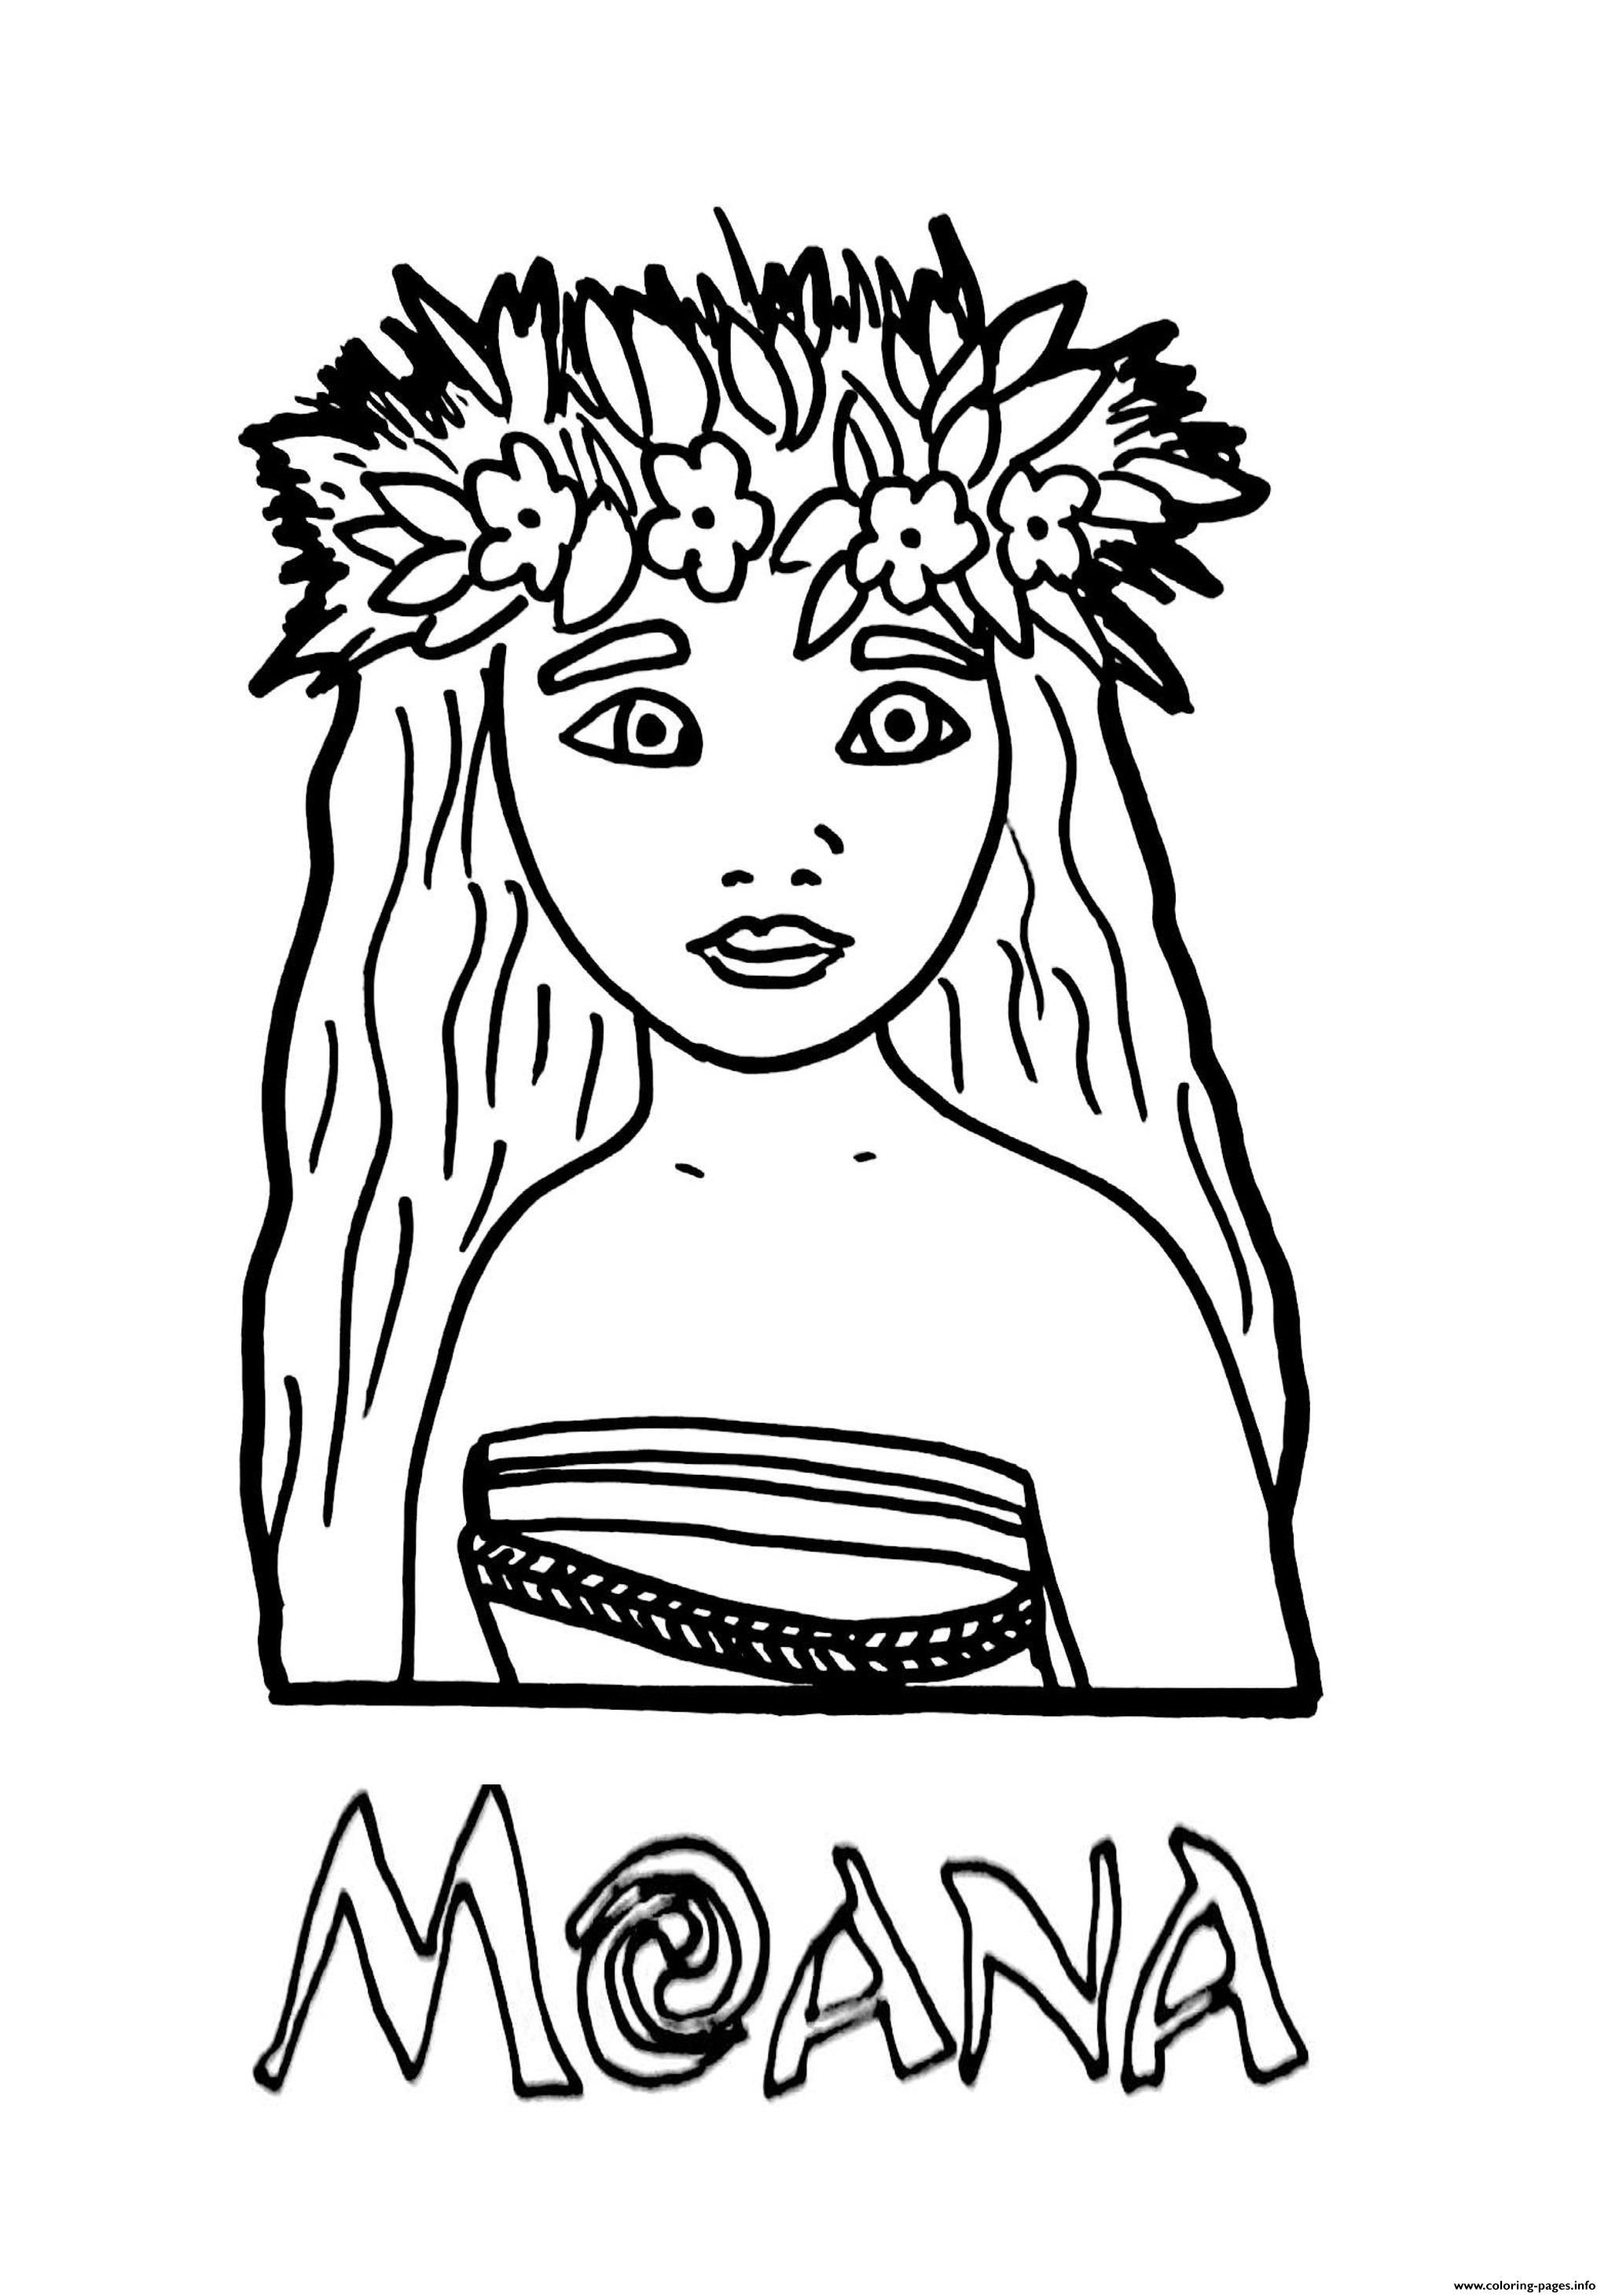 Moana Princess Coloring Pages Printable And Book To Print For Free Find More Online Kids Adults Of